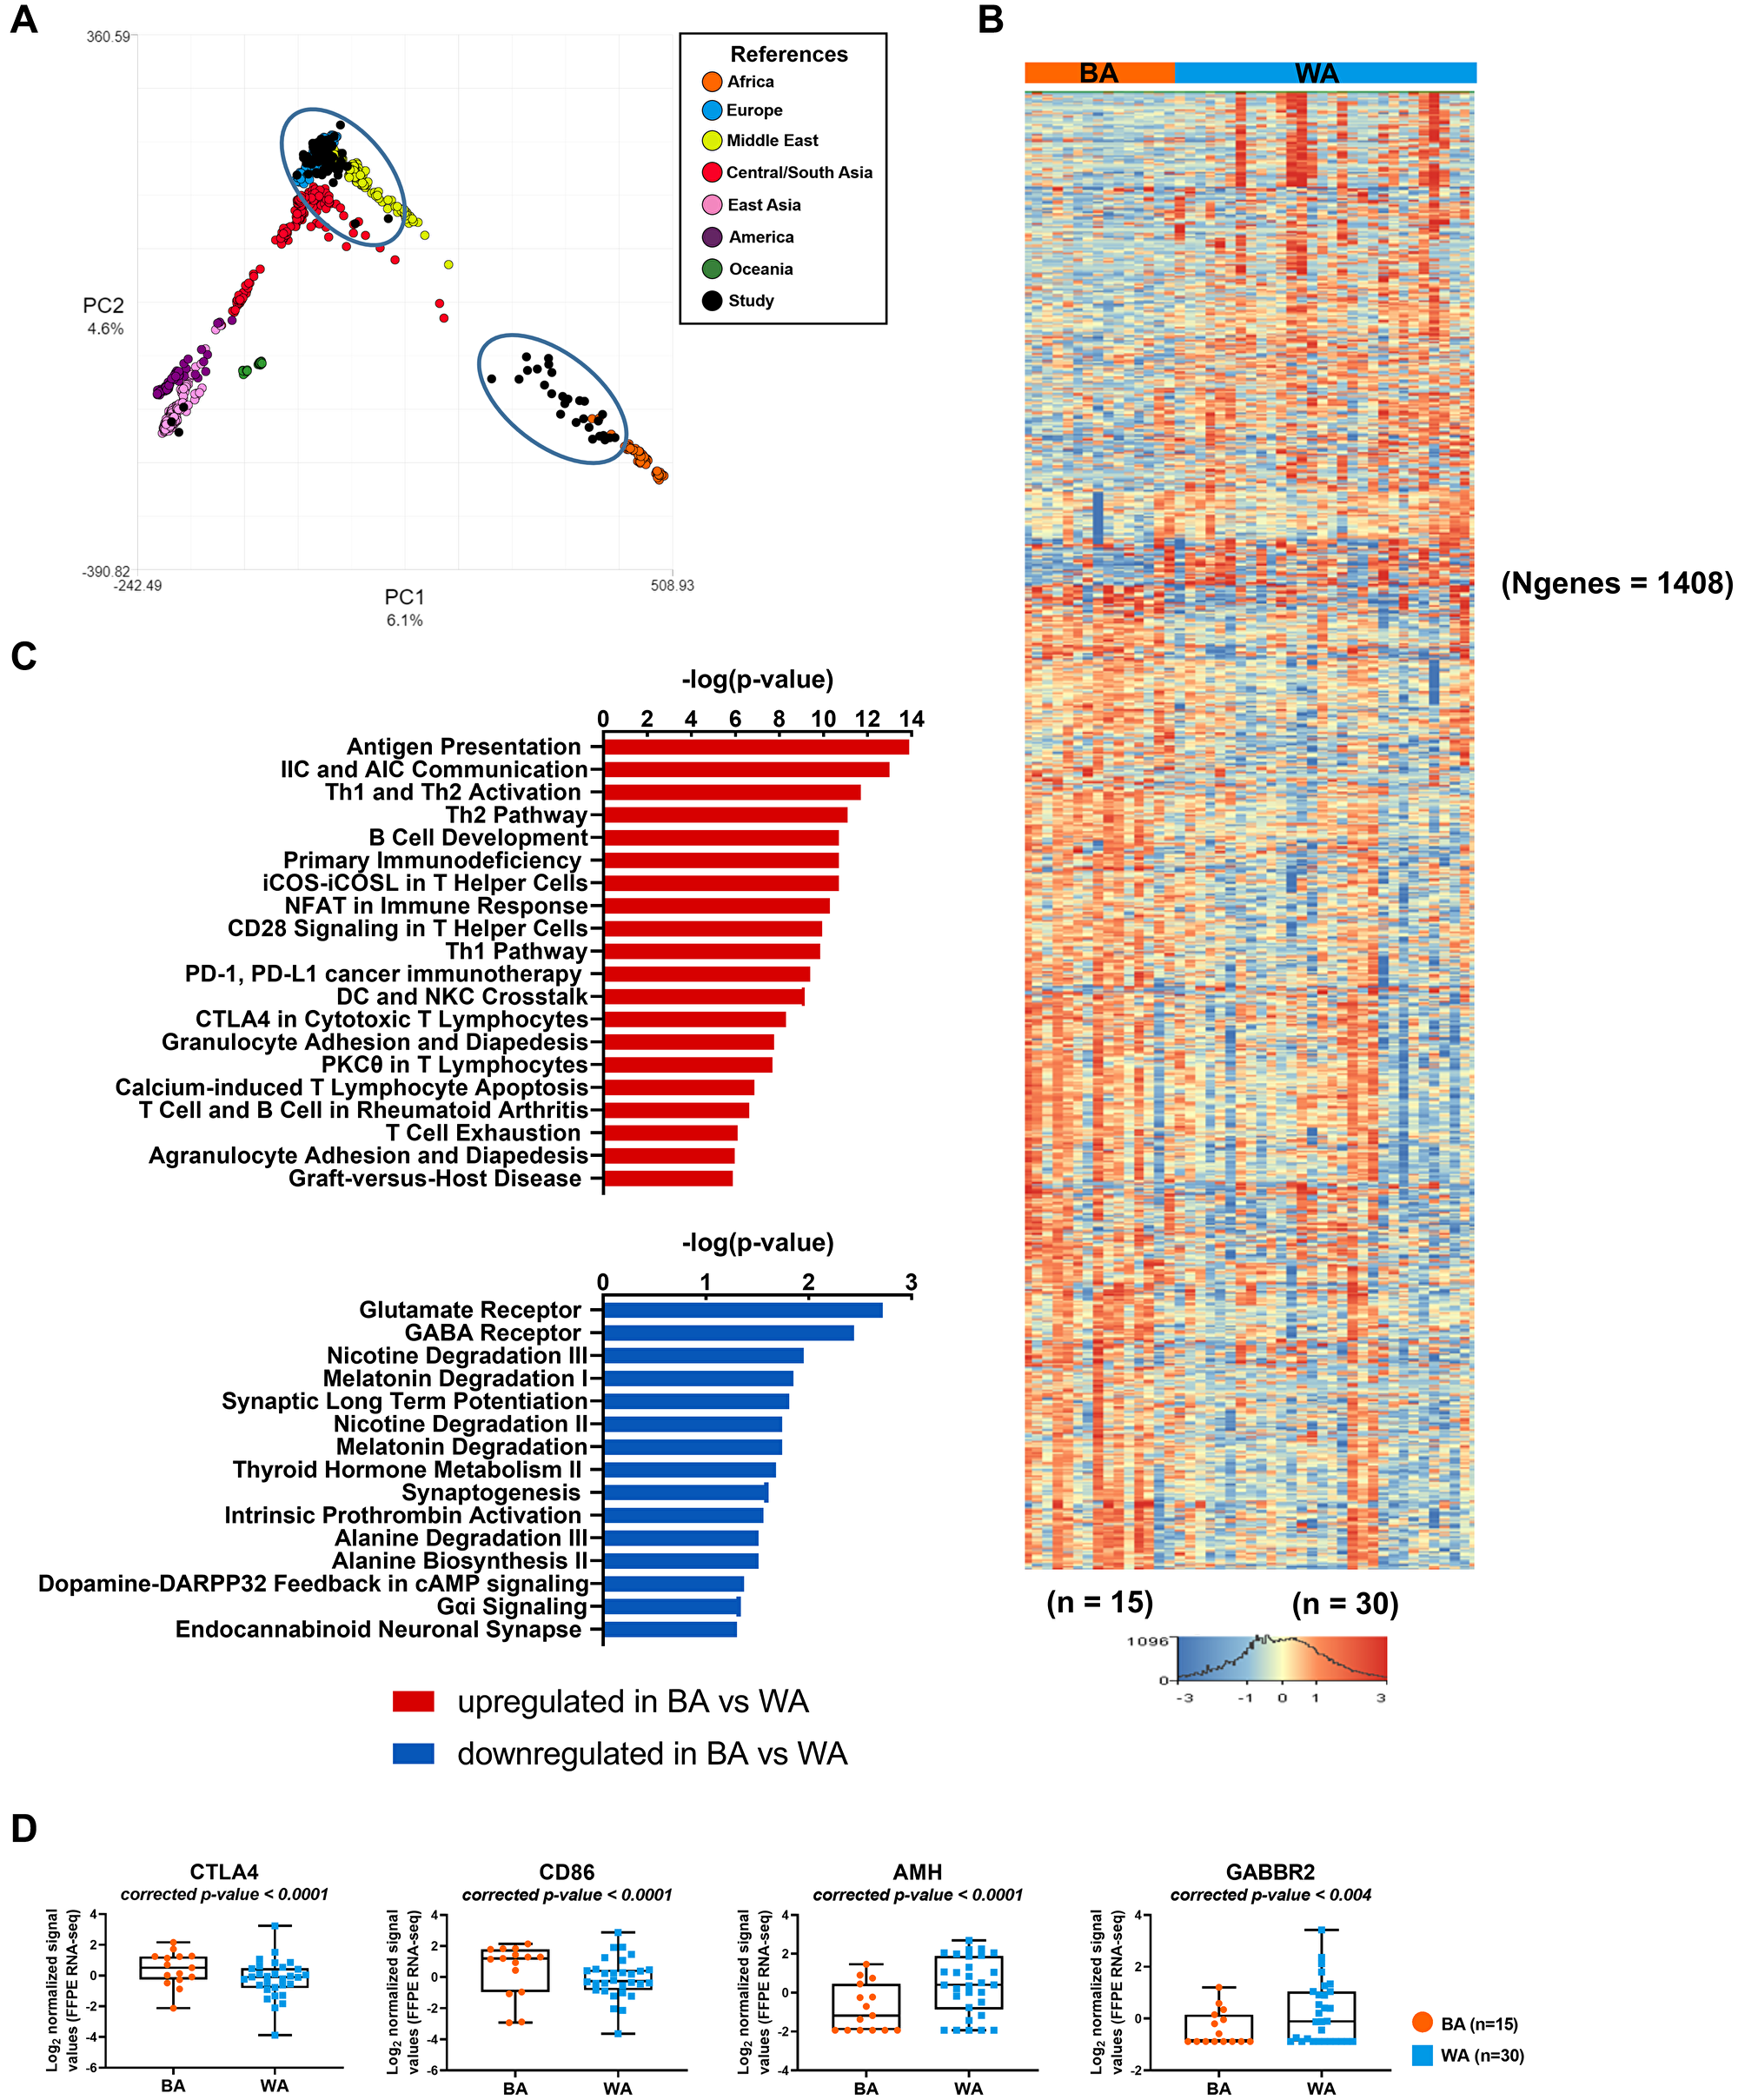 Transcriptome analysis of tumor samples of PCa patients with different geographical ancestries.